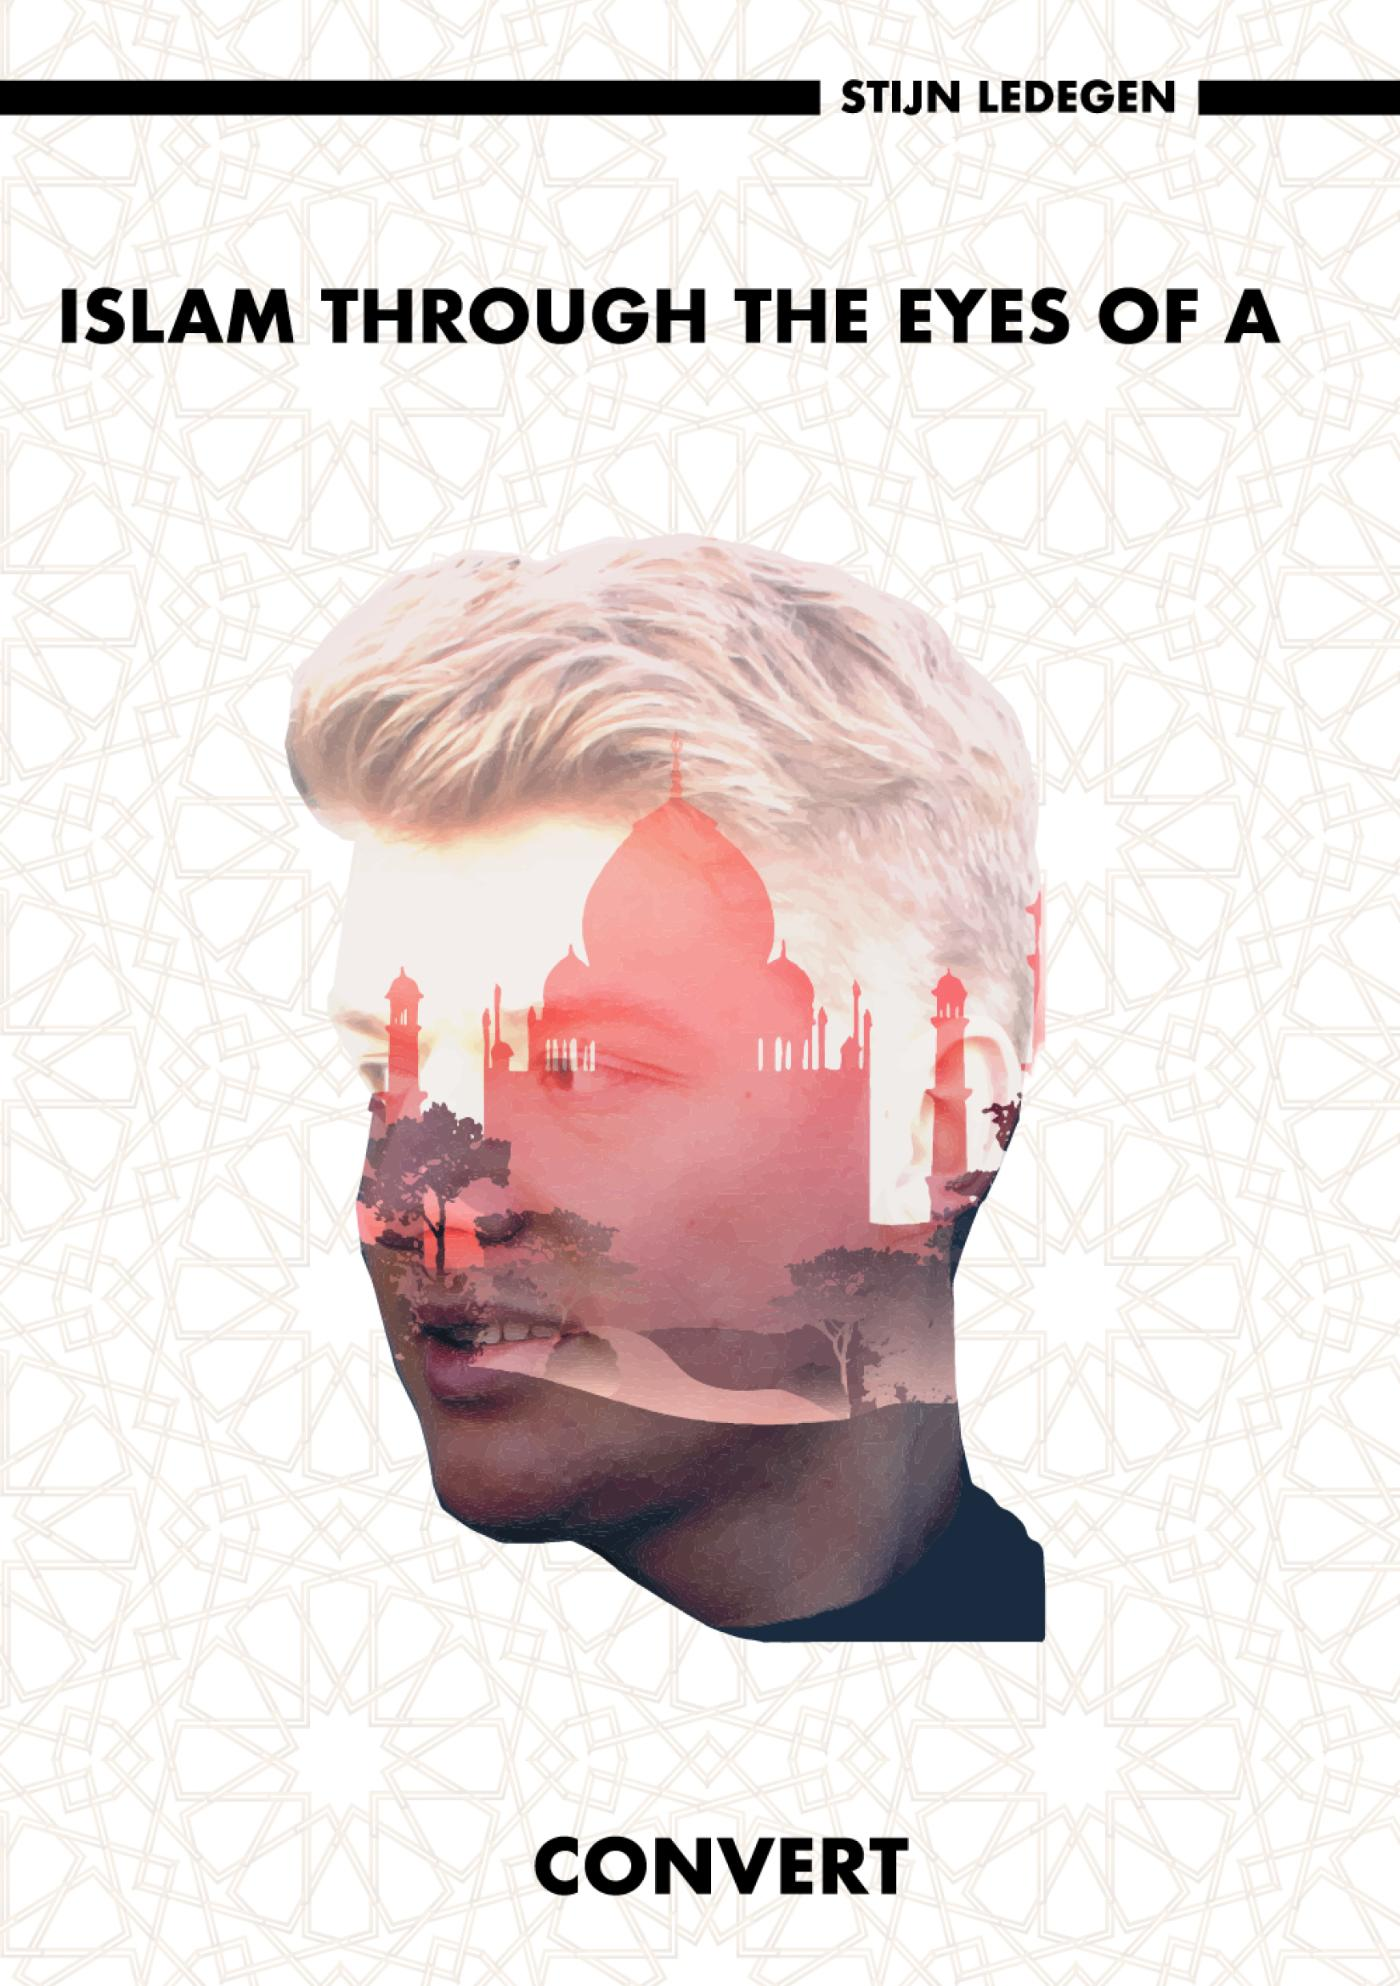 Islam through the eyes of a convert